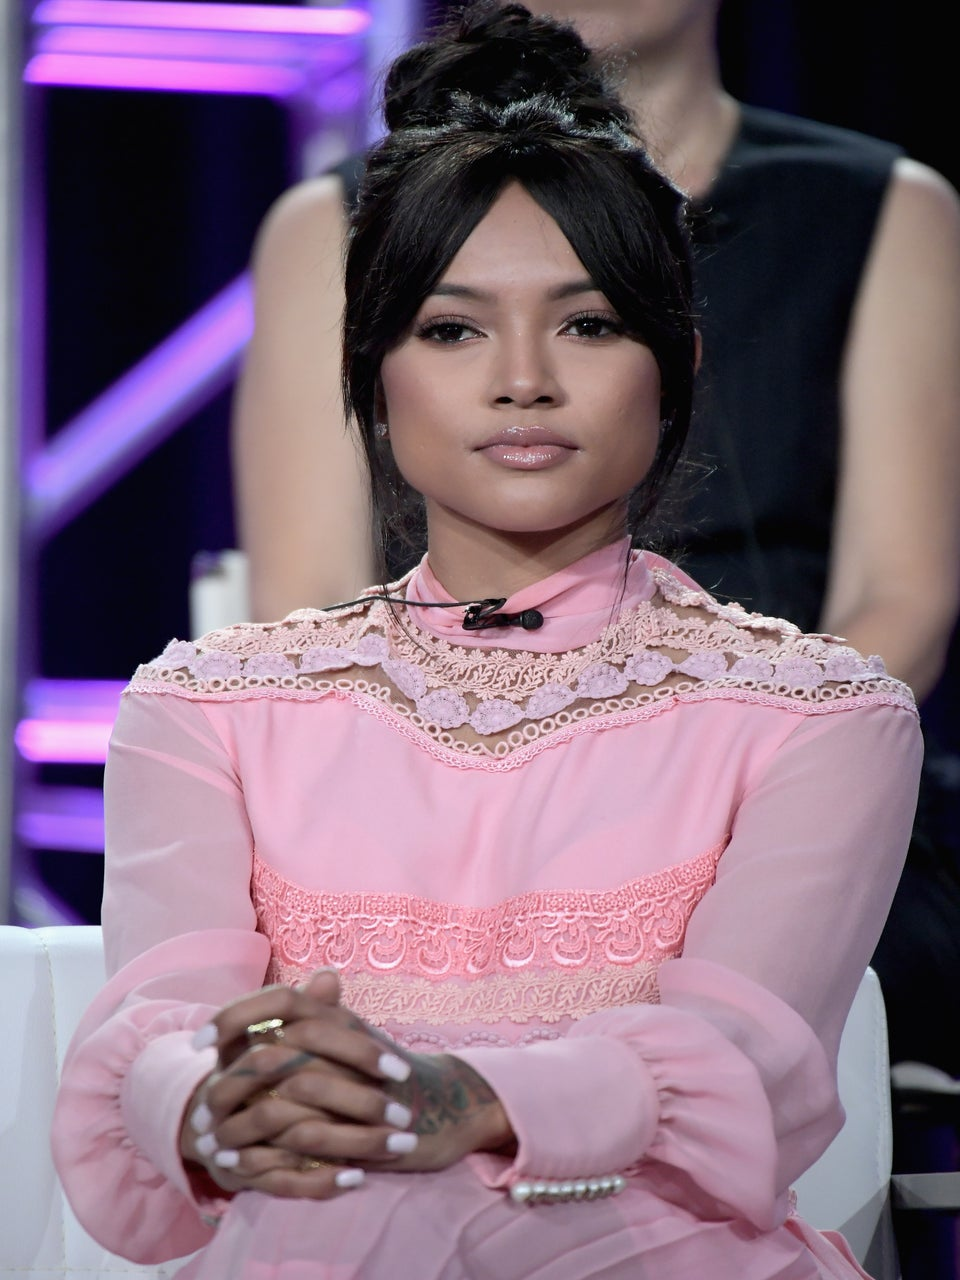 Karrueche Tran Is Ready To Face Chris Brown In Court